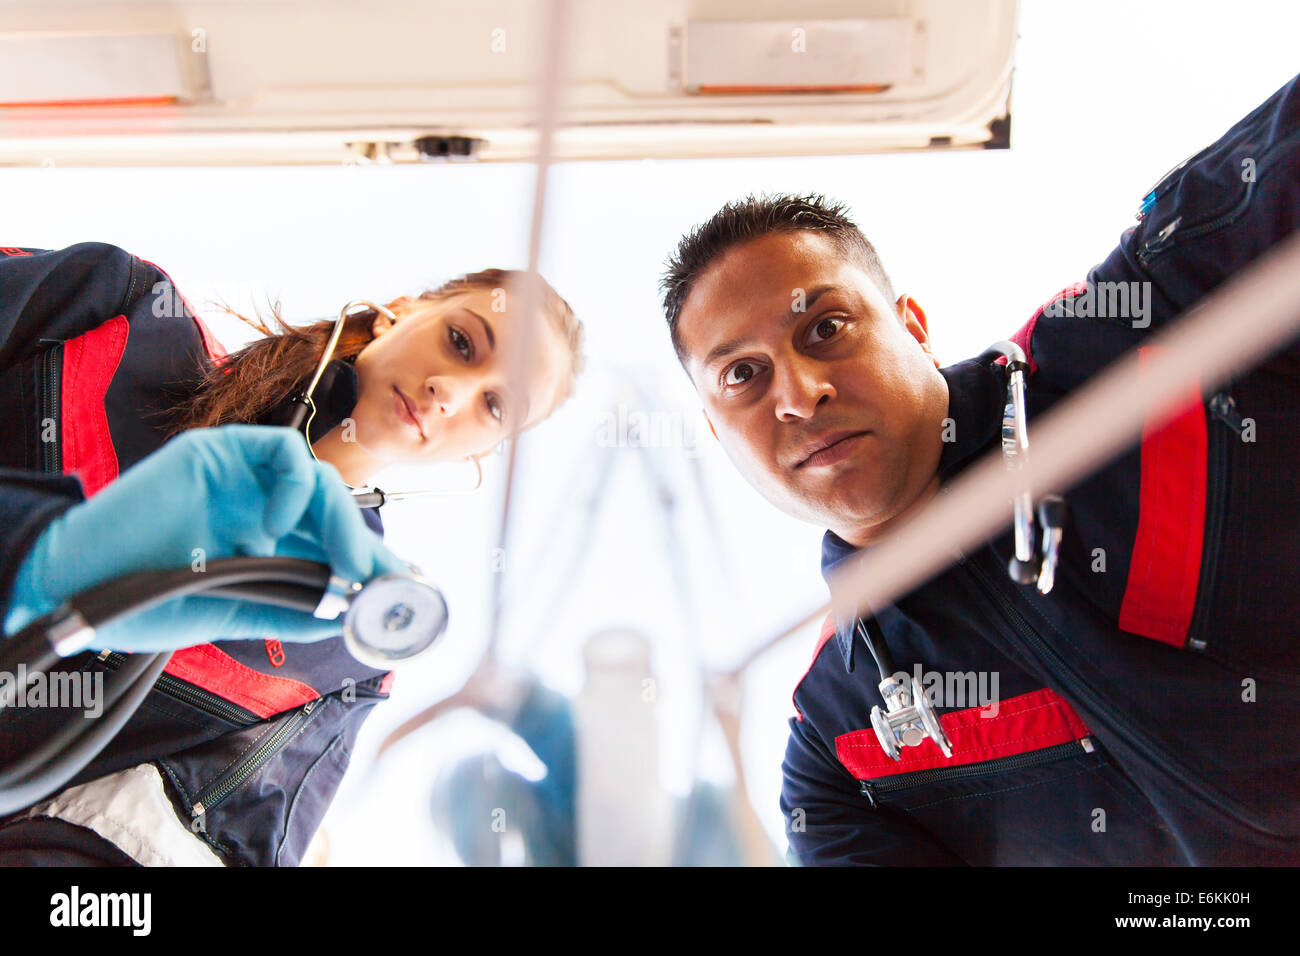 underneath view of paramedic team giving first aid to patient - Stock Image